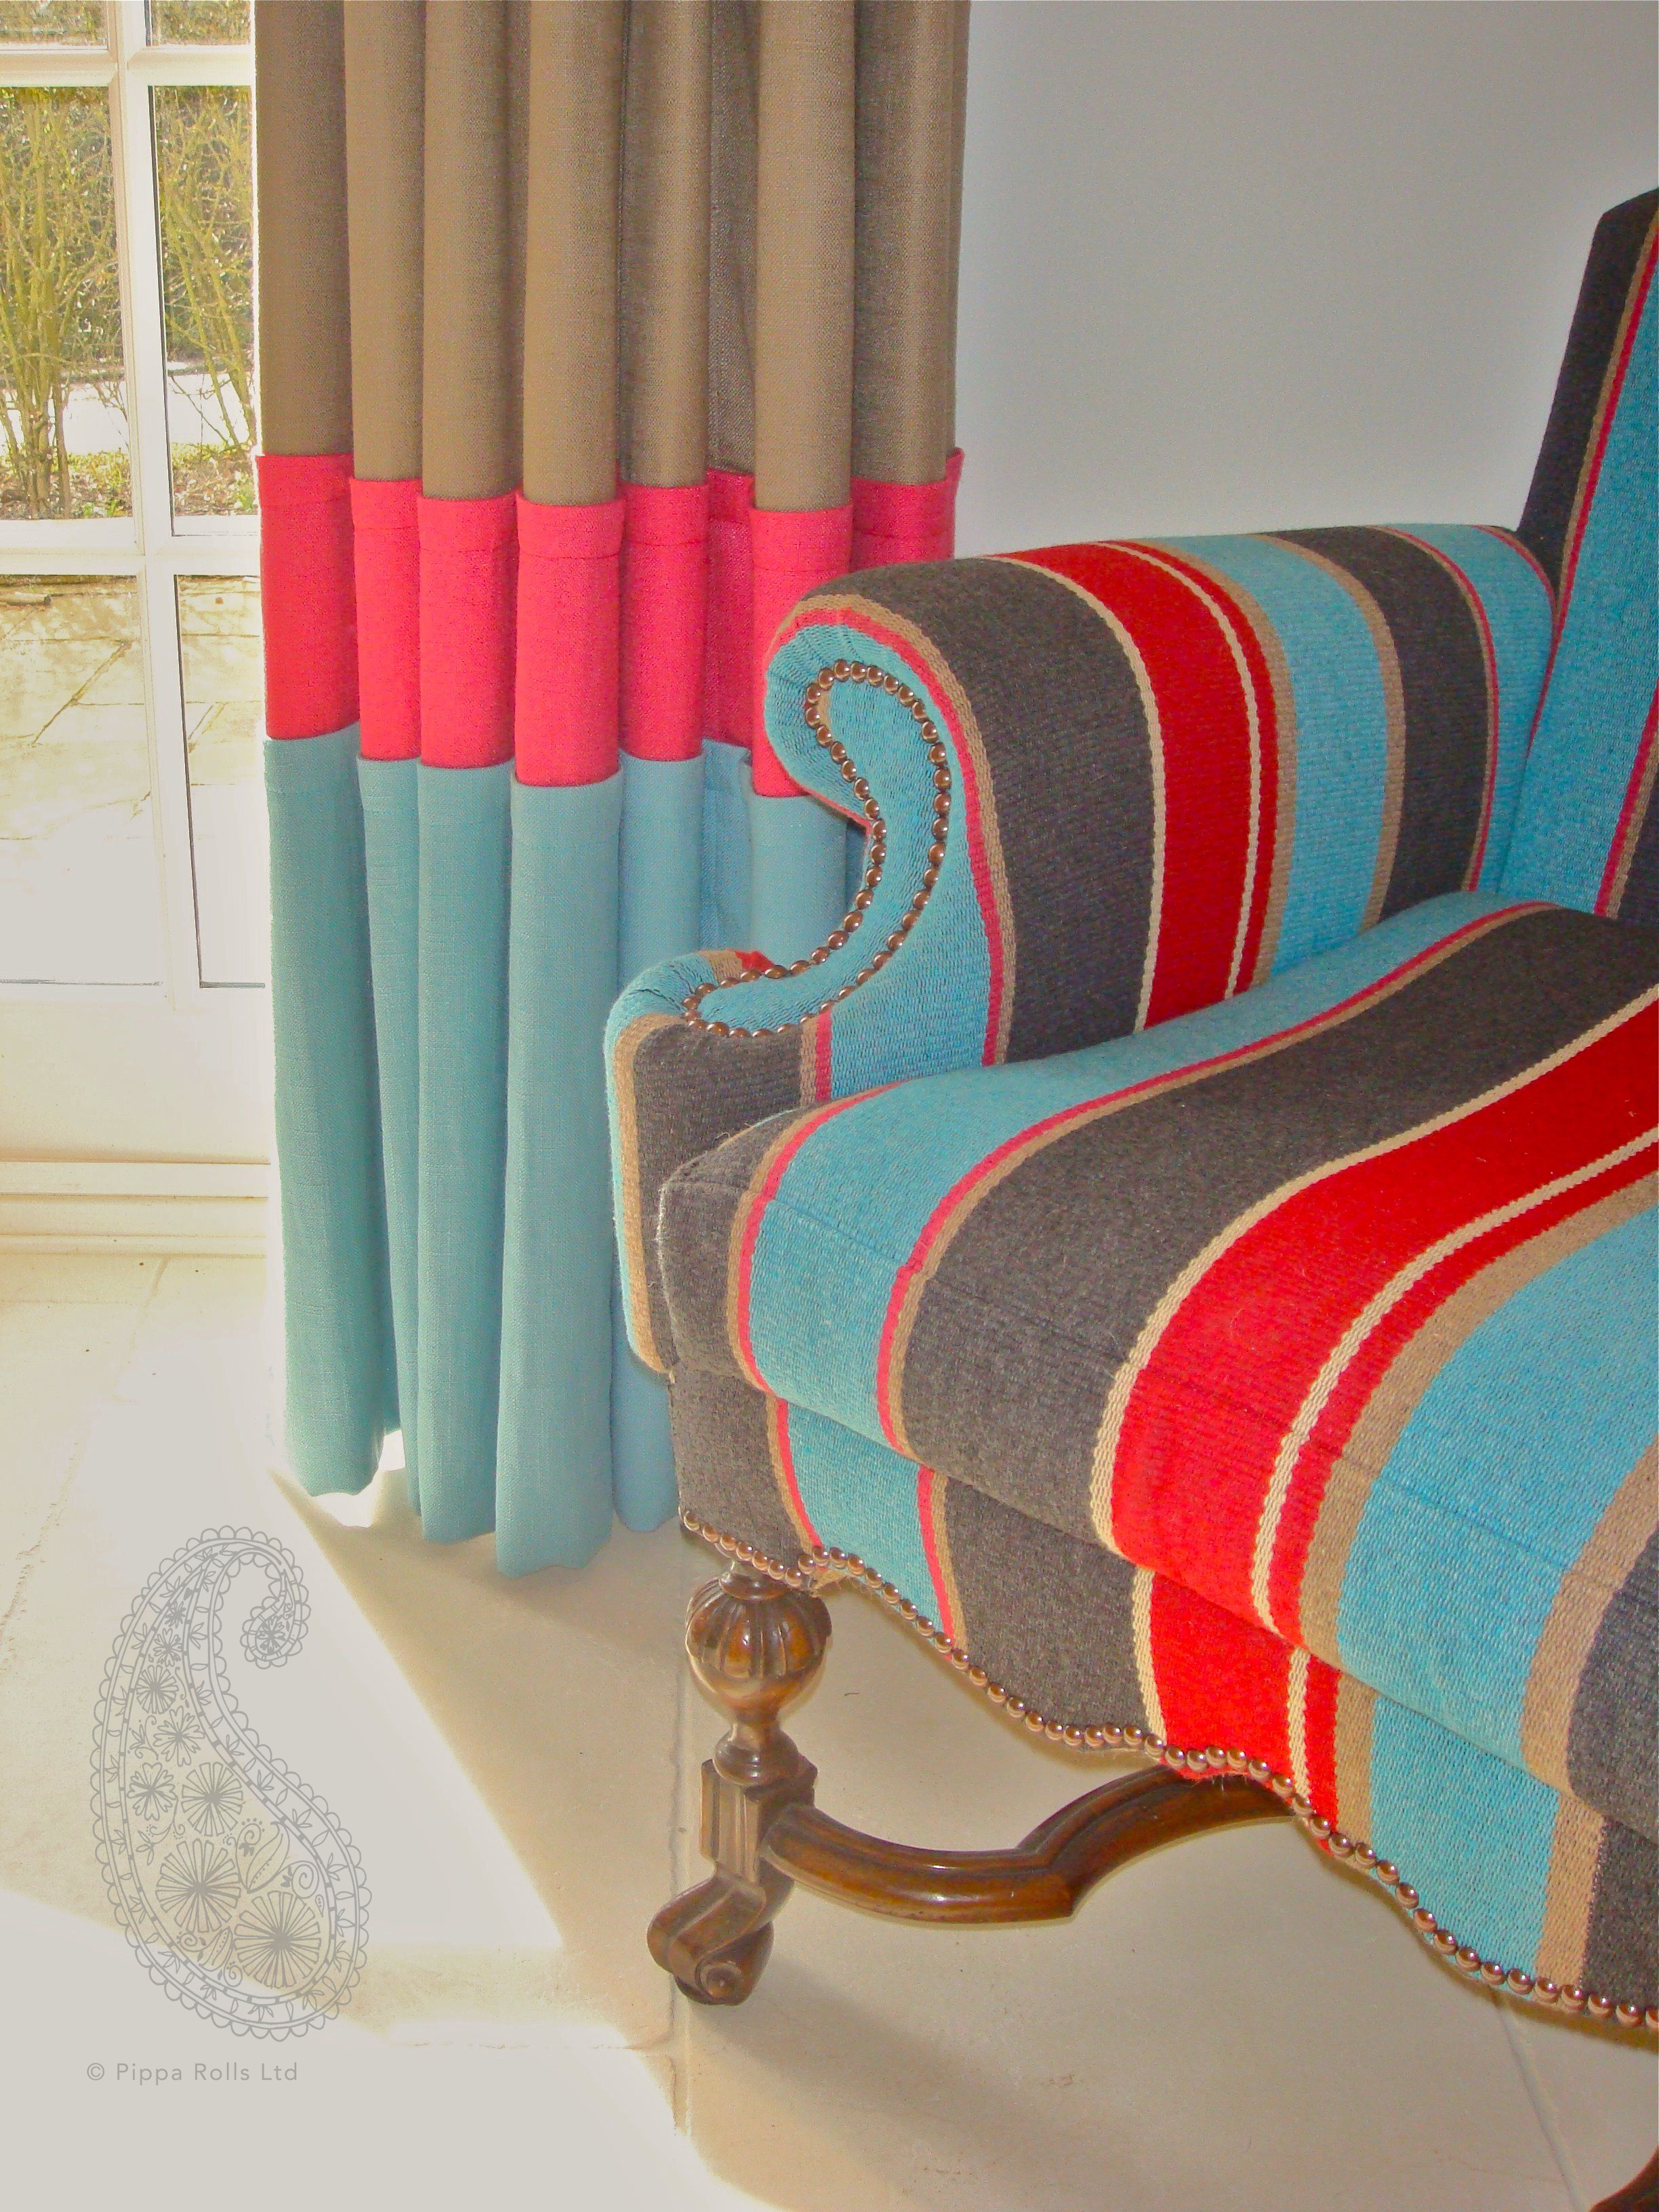 three colour curtain and armchair by Pippa Rolls Limted jpeg.jpg